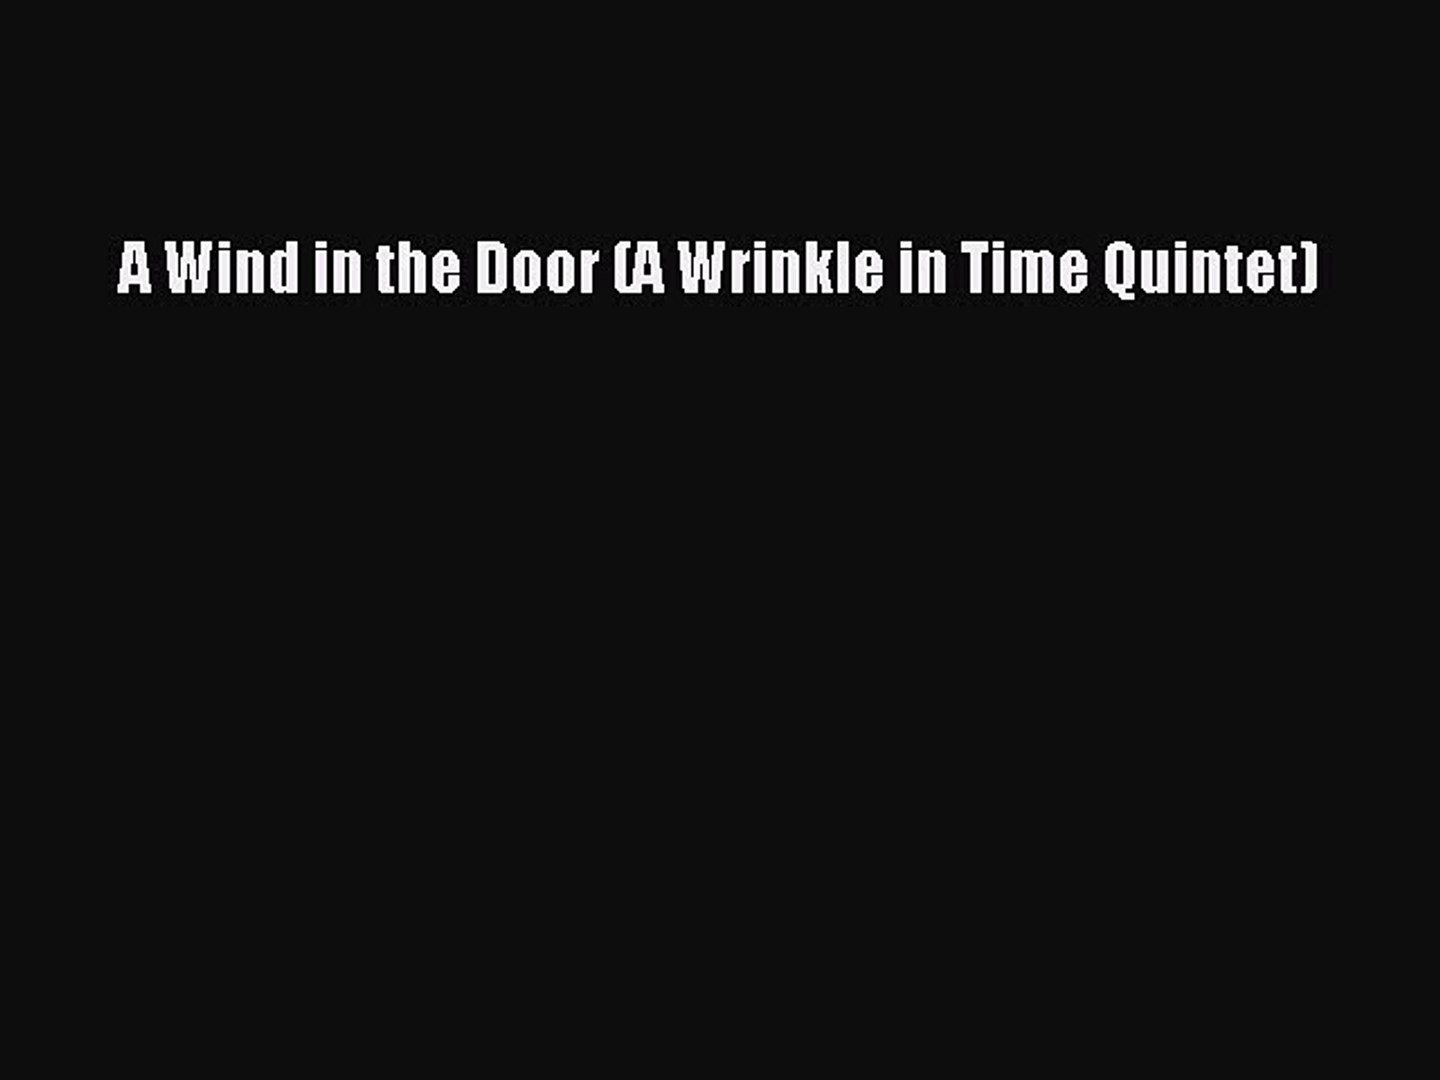 [PDF] A Wind in the Door (A Wrinkle in Time Quintet)  Read Online